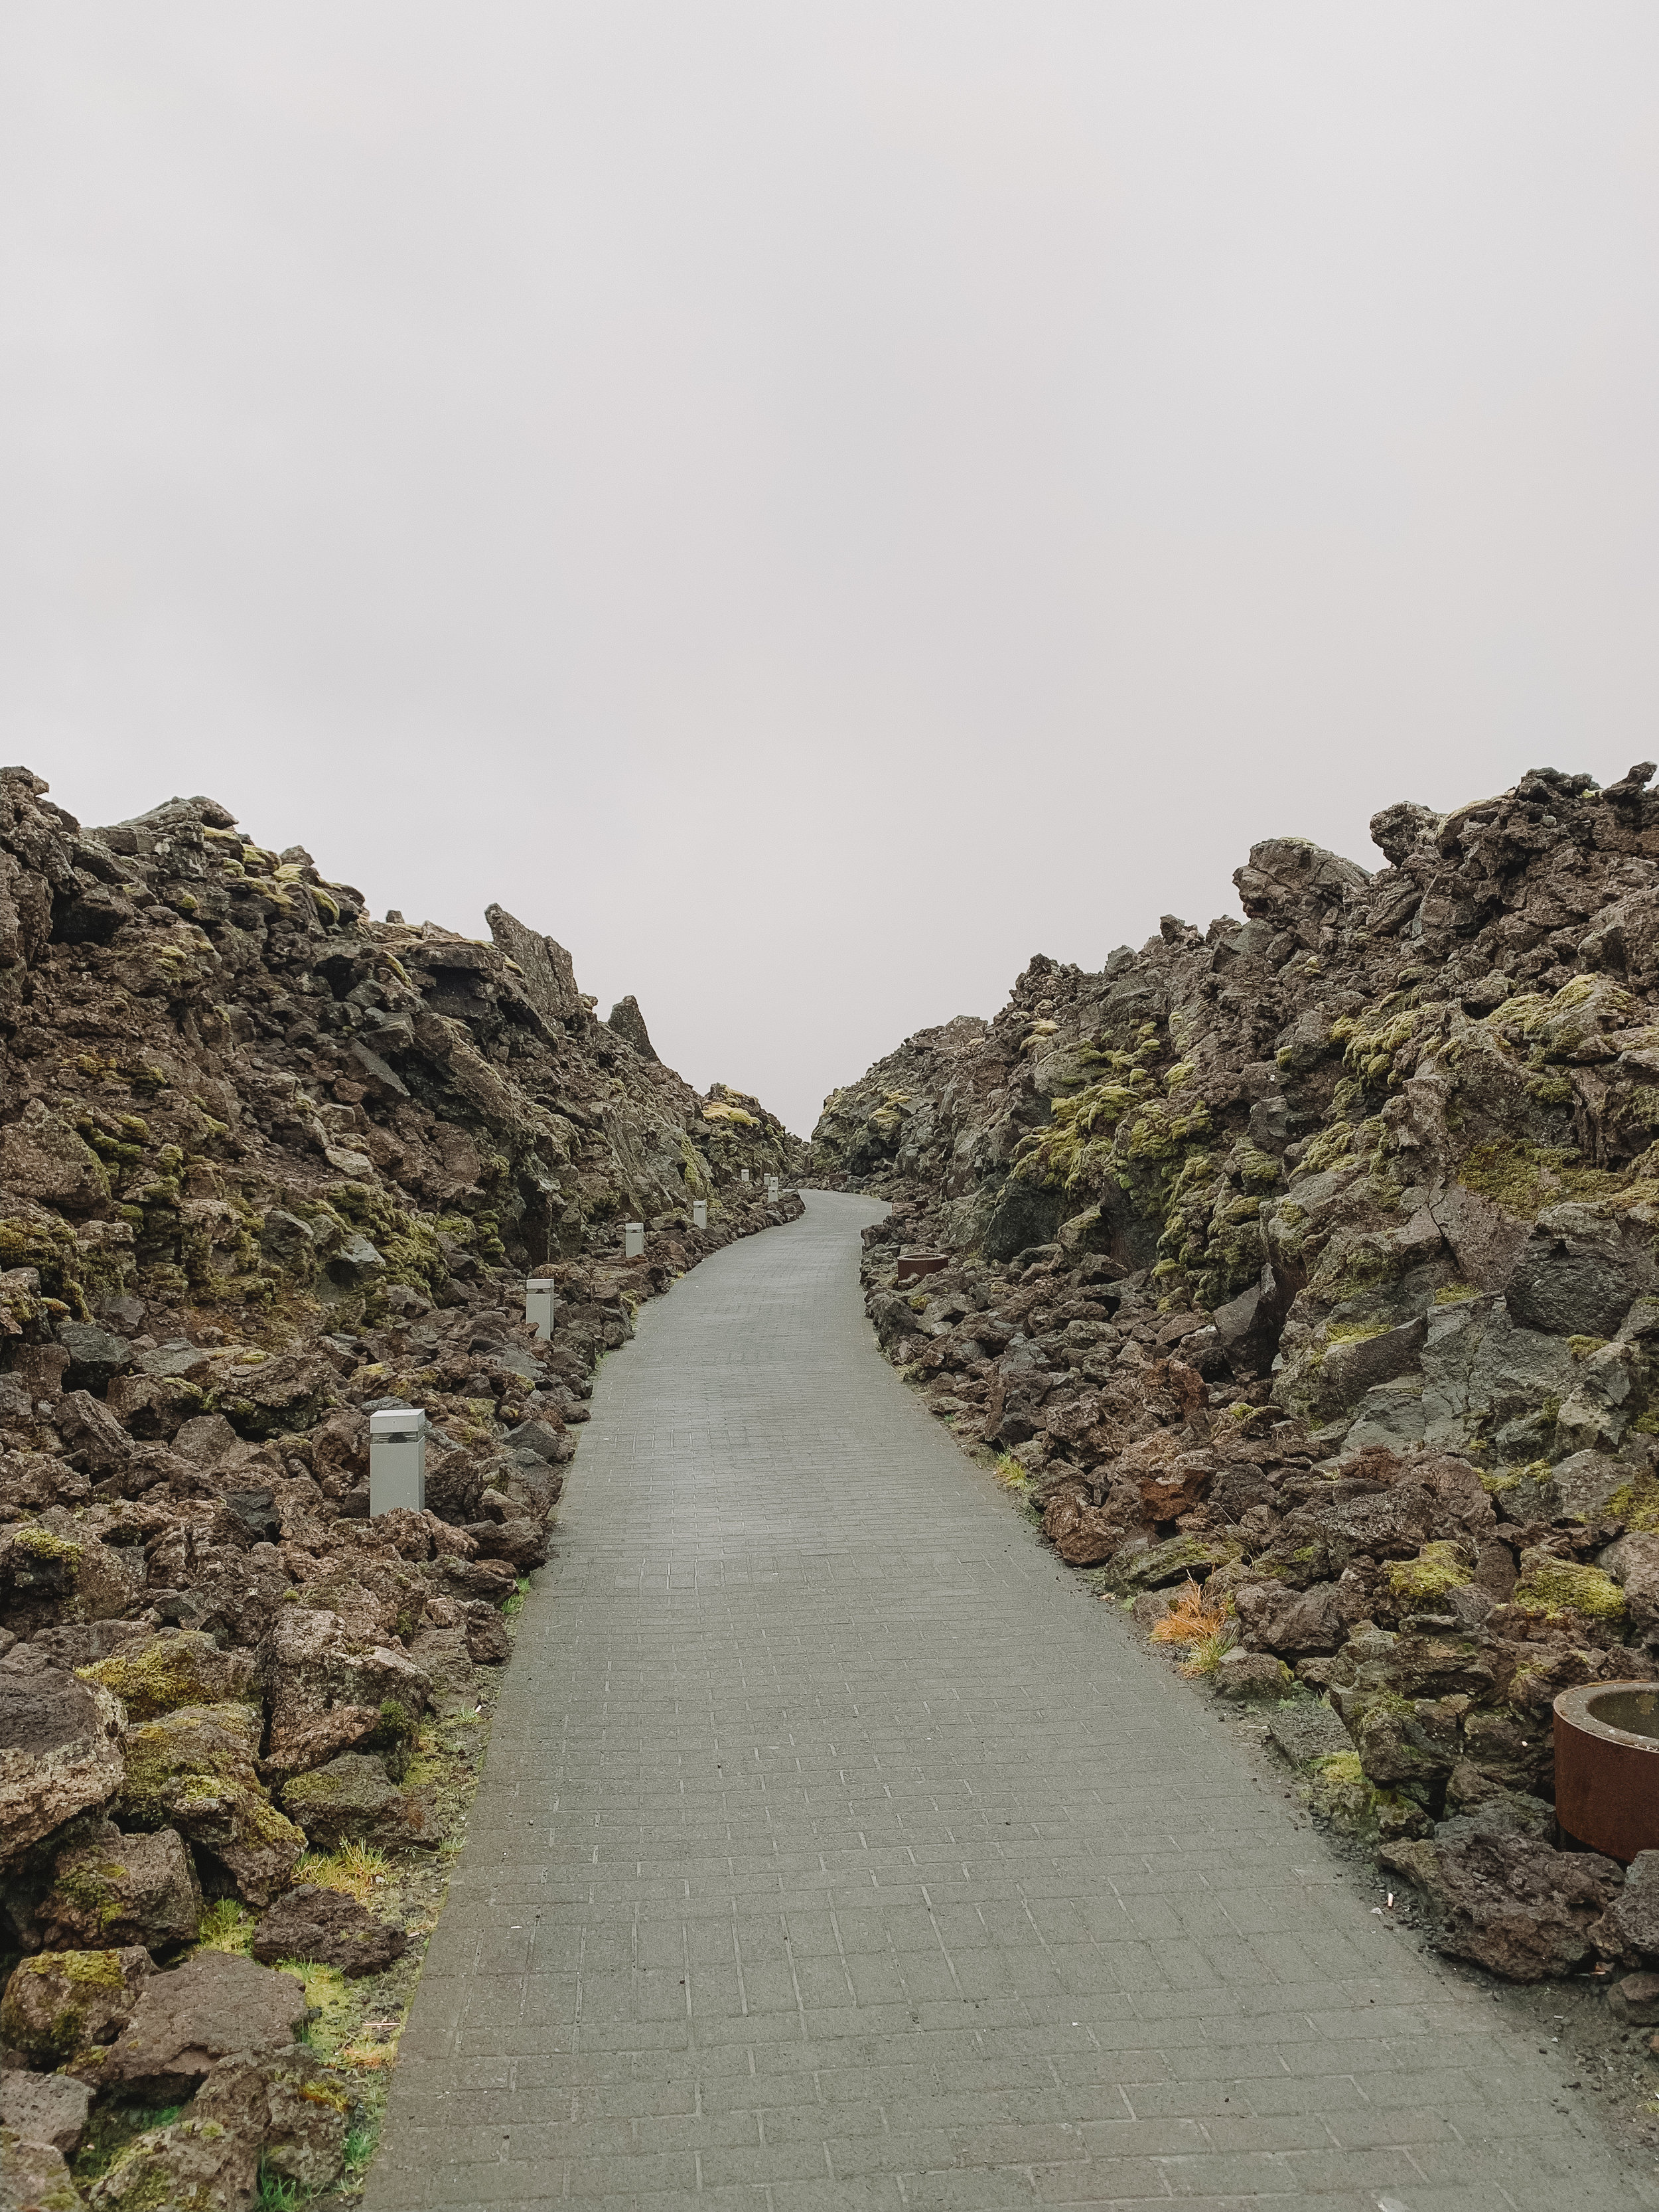 The path leaving the lagoon was so pretty it looked like something out of Game of Thrones.